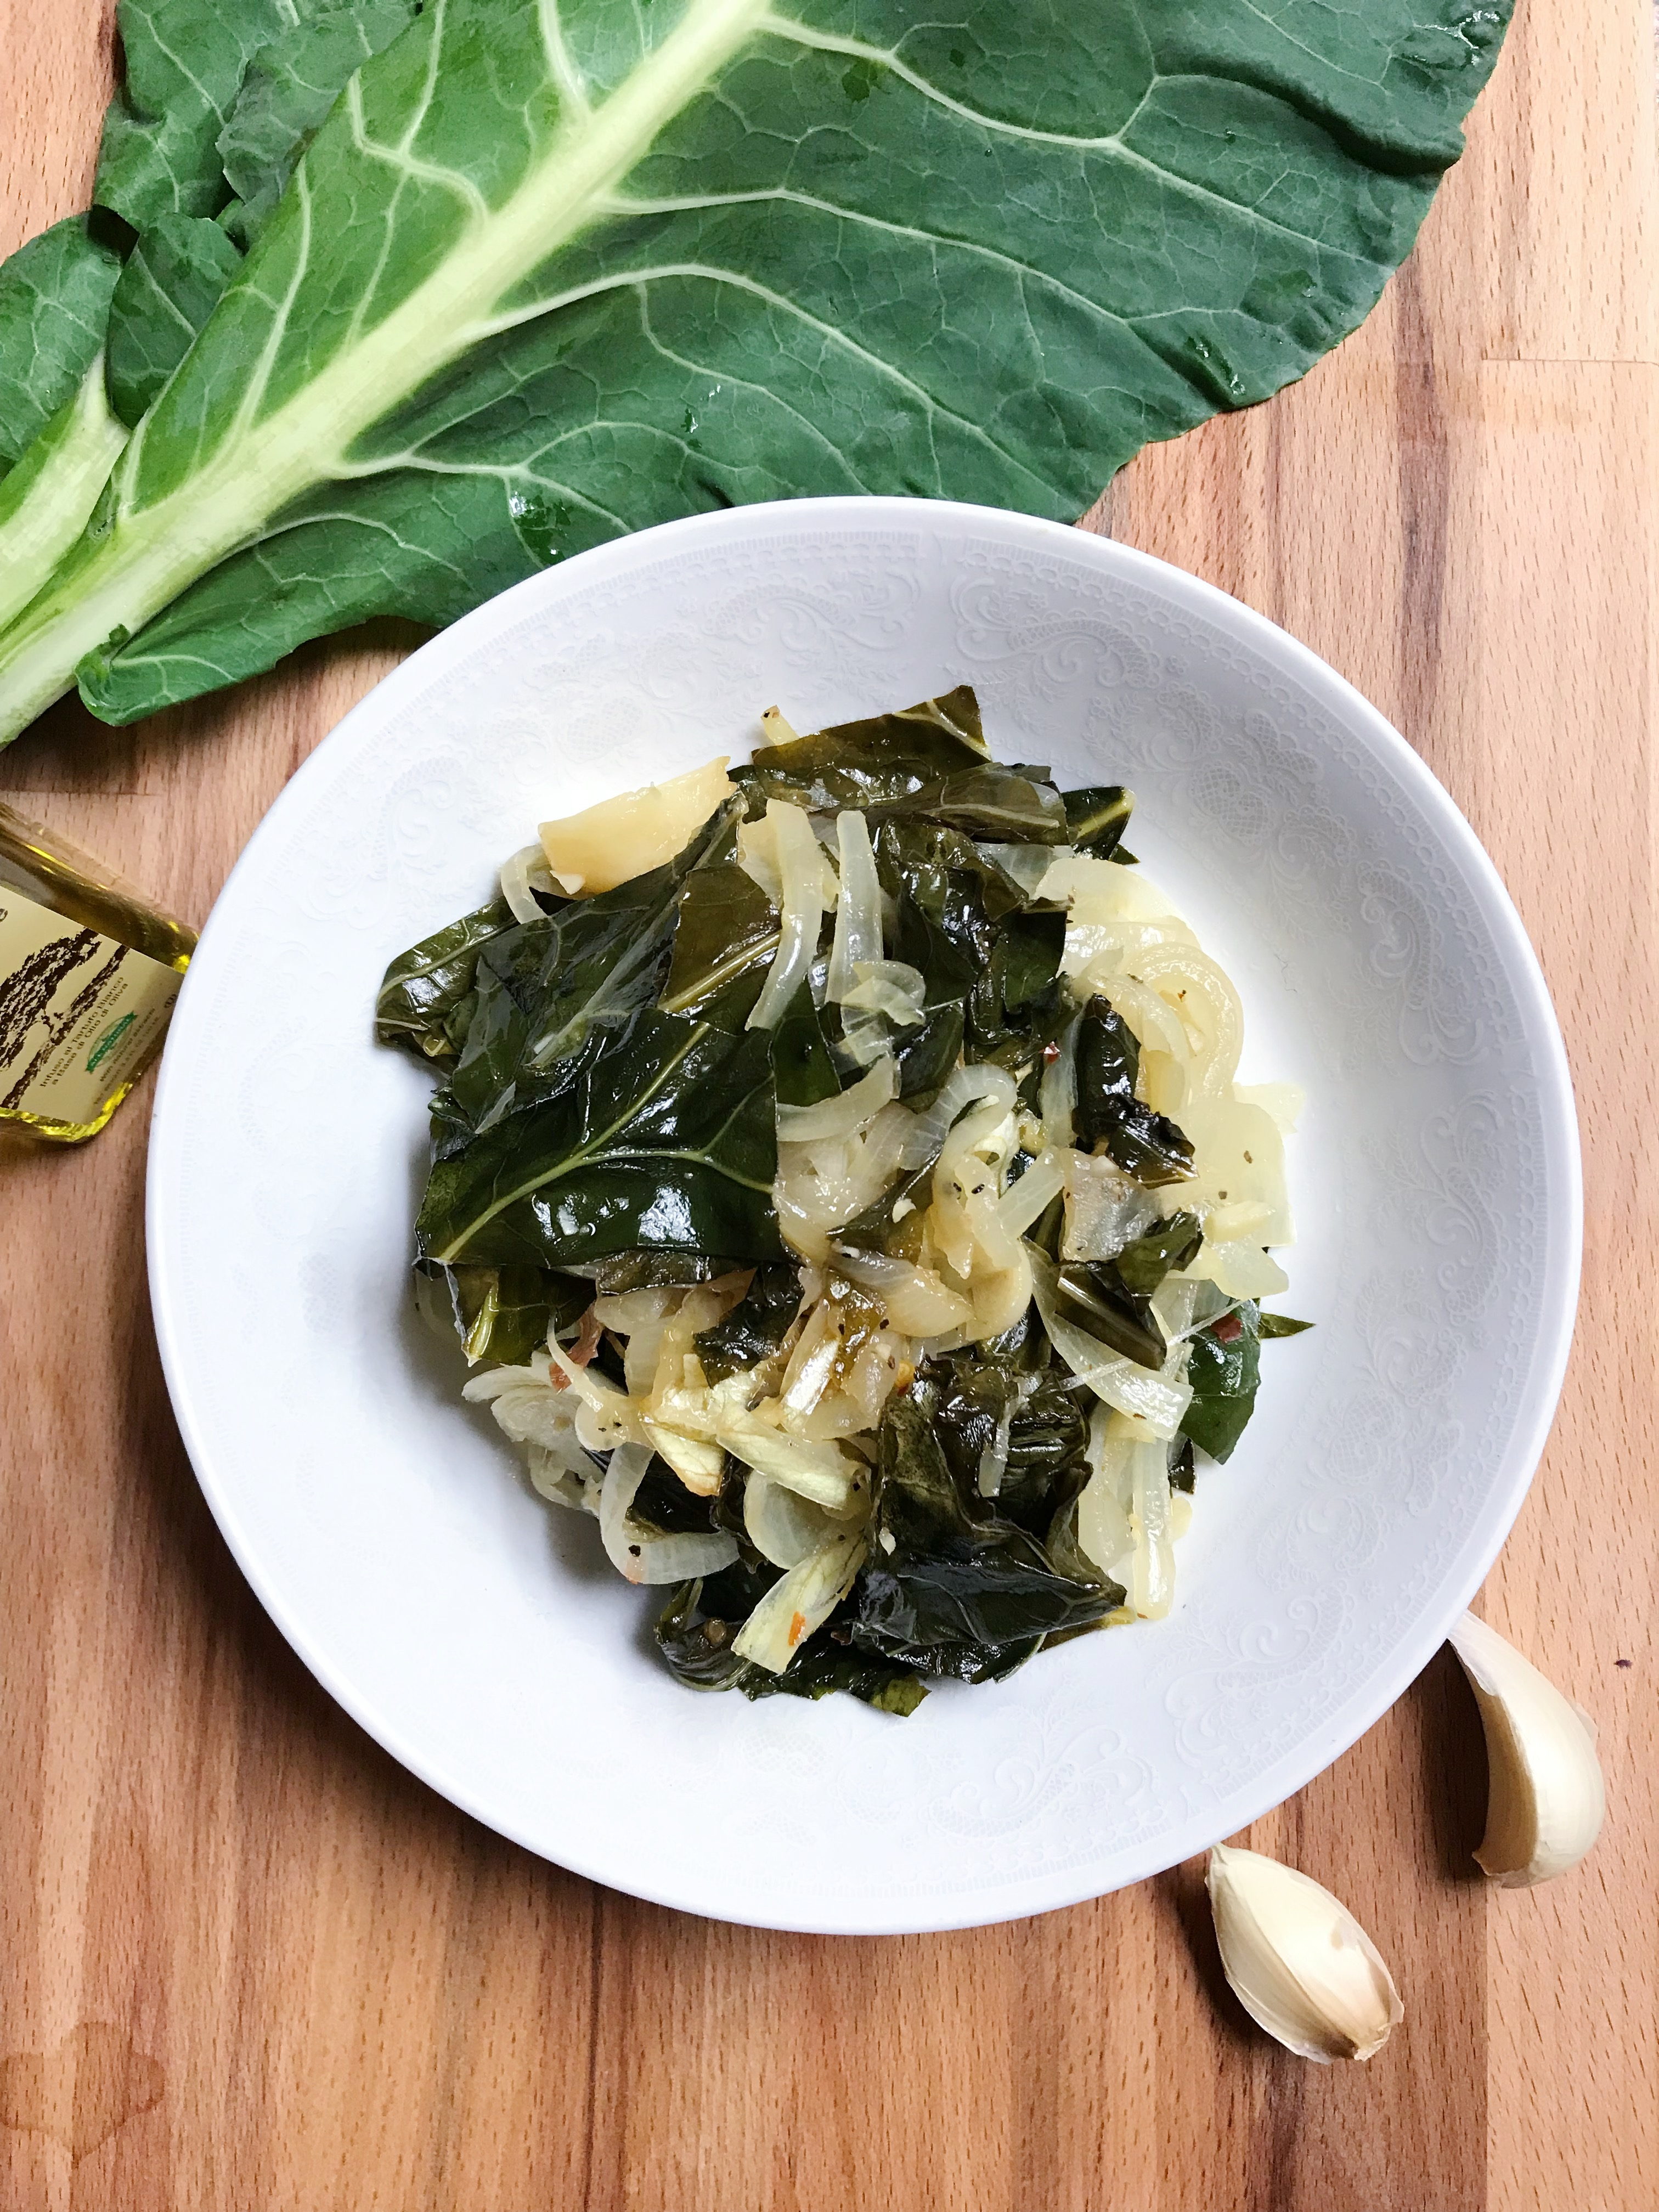 Collard Greens with Truffle Oil, Caramelized Onions, and Roasted Garlic